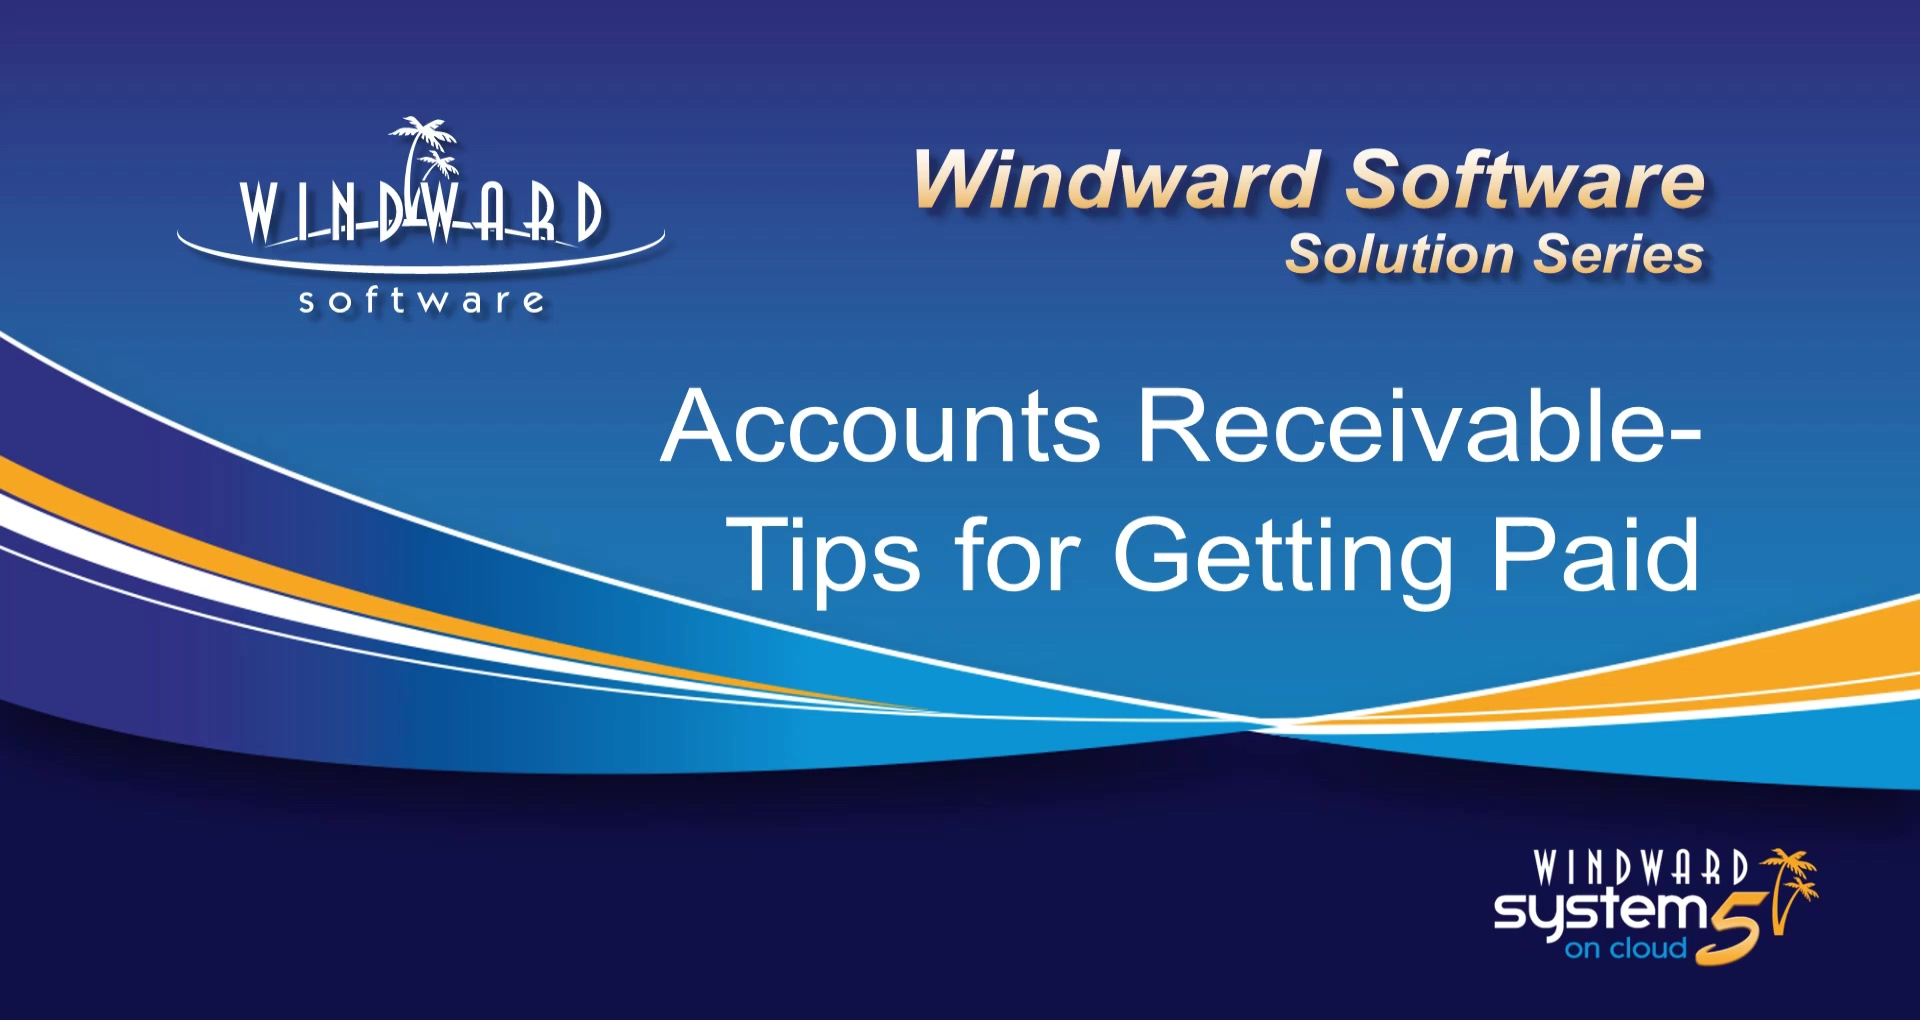 accounts-receivable-getting-paid-windward-solution-series